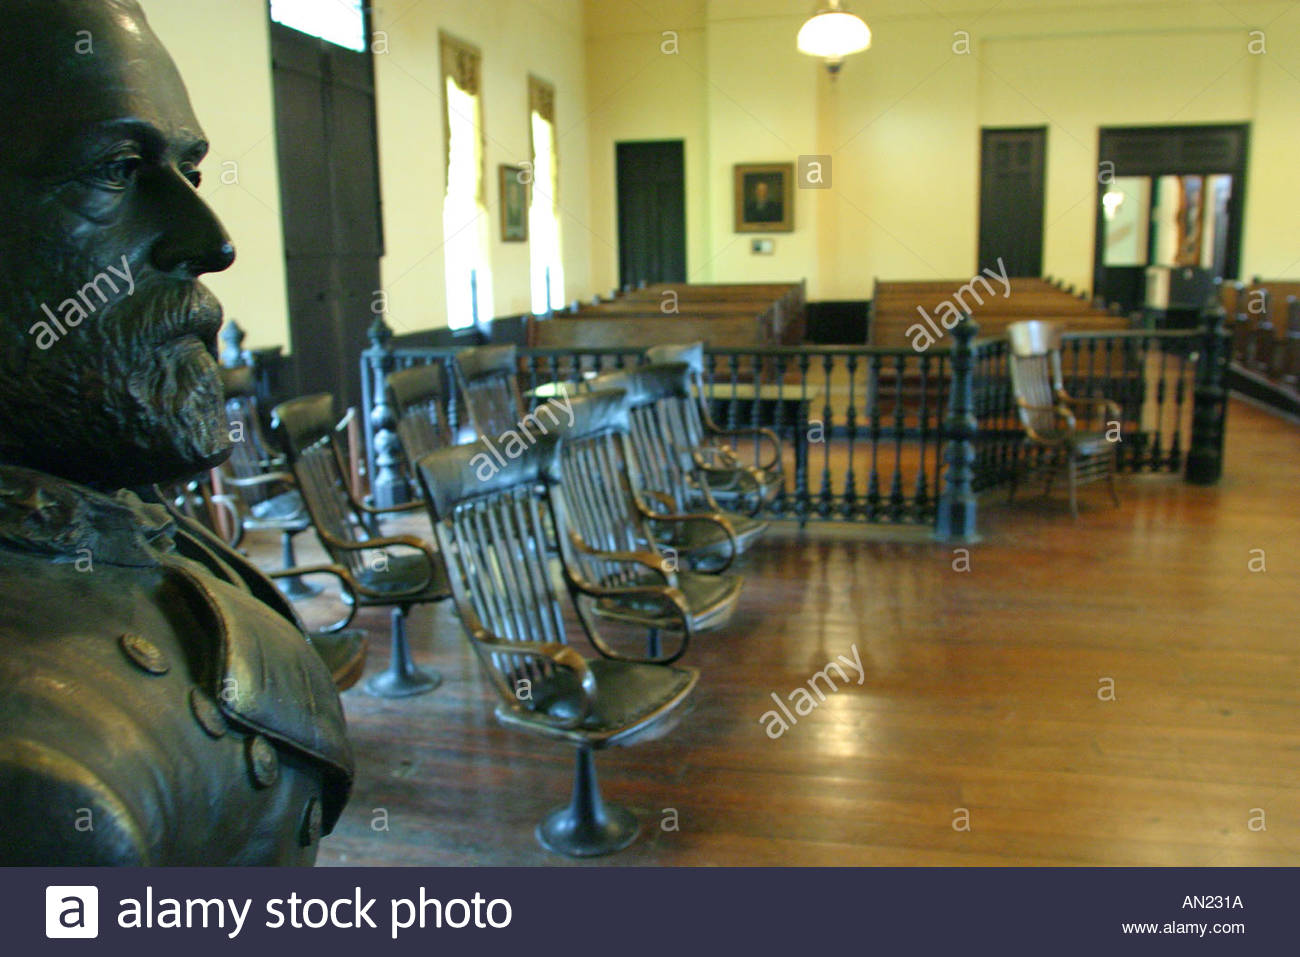 Mississippi Vicksburg The Old Court House Museum Robert E. Lee bust courtroom - Stock Image